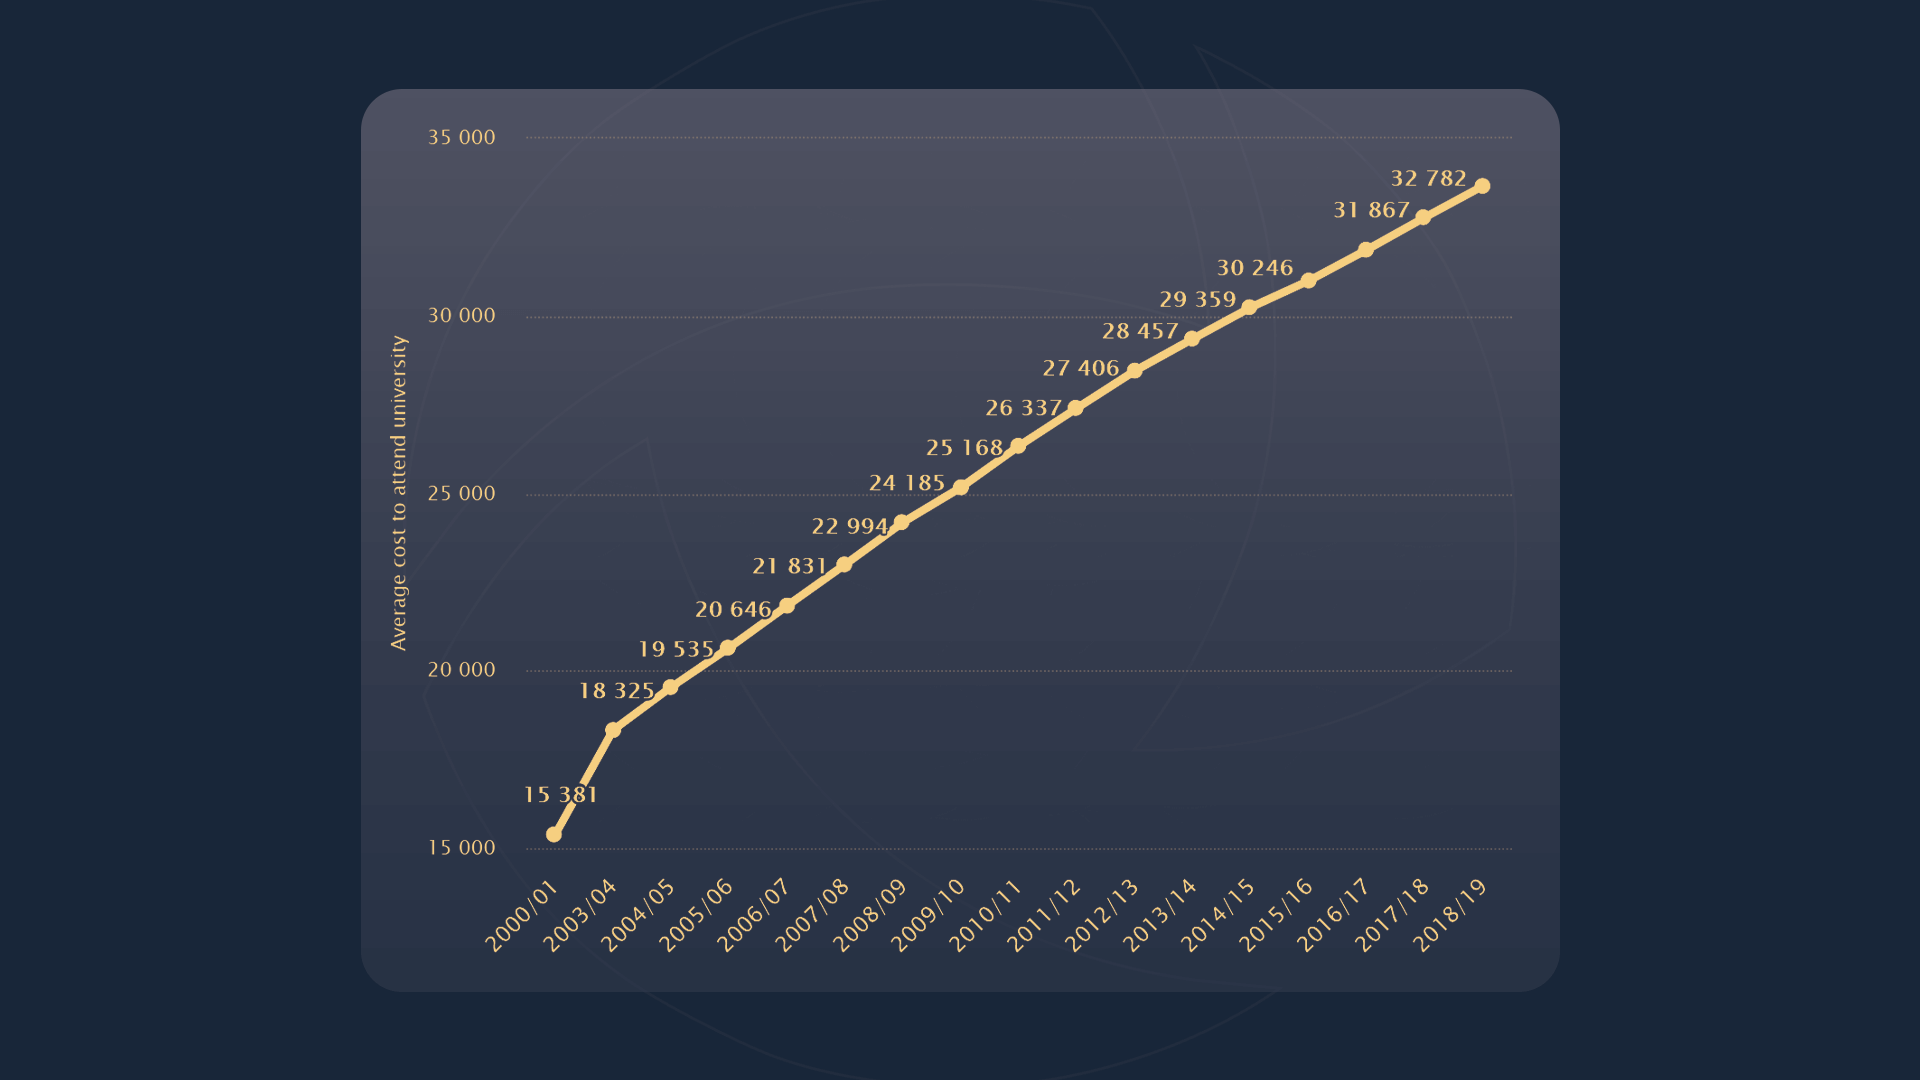 Line graph showing the  rise in cost of university from the years 2000/1 to 2018/19, beginning at $15,381 and ending at $32,782.